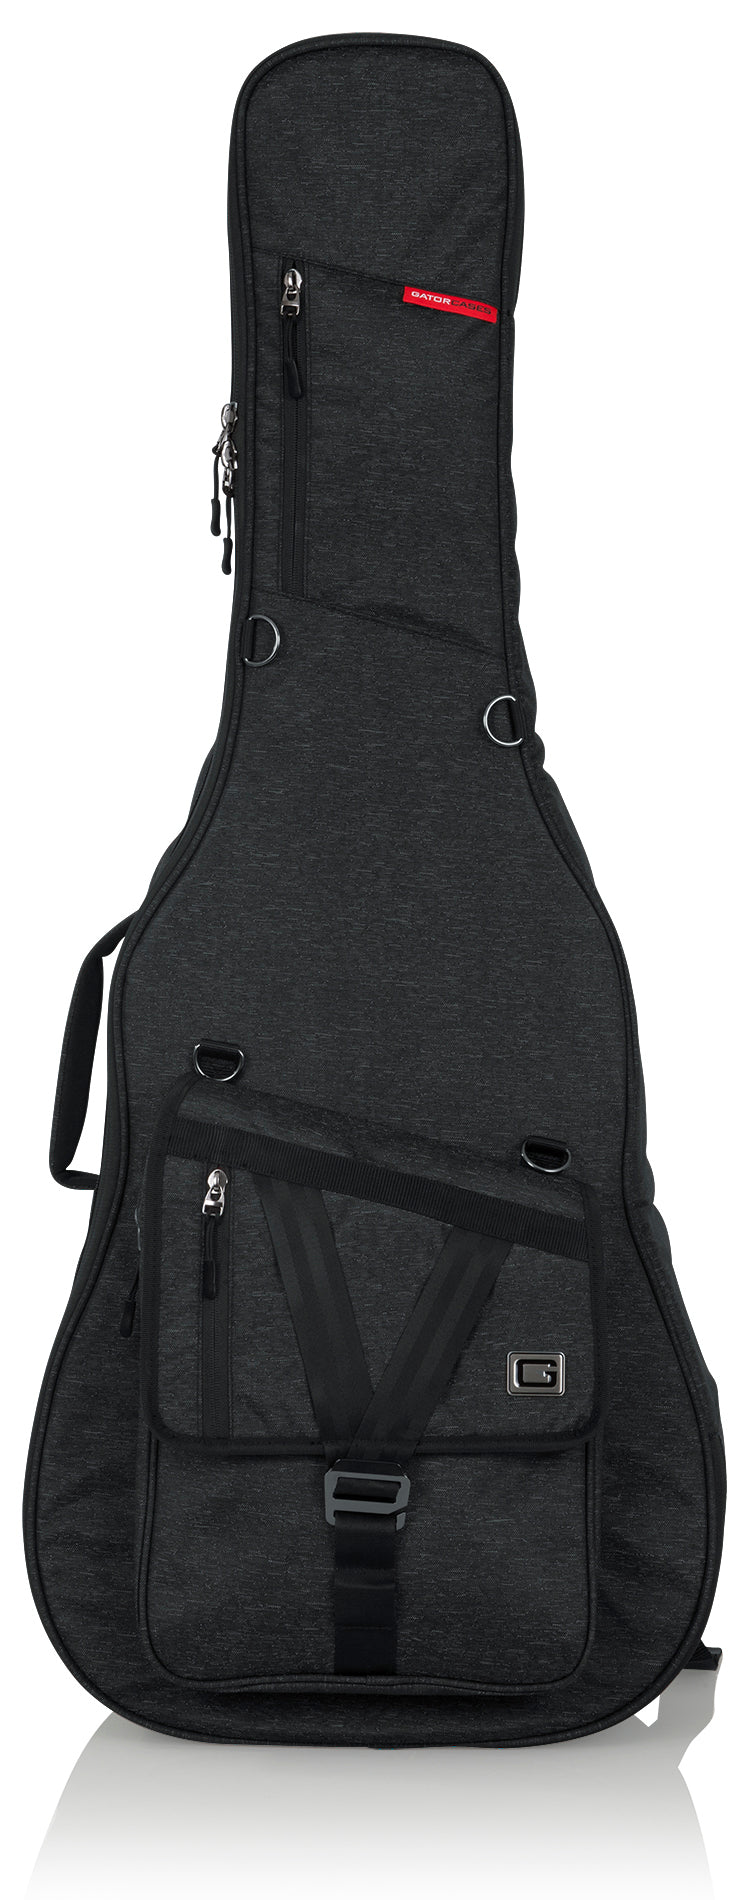 Gator GT-ACOUSTIC-BLK Transit Acoustic Guitar Bag - Charcoal